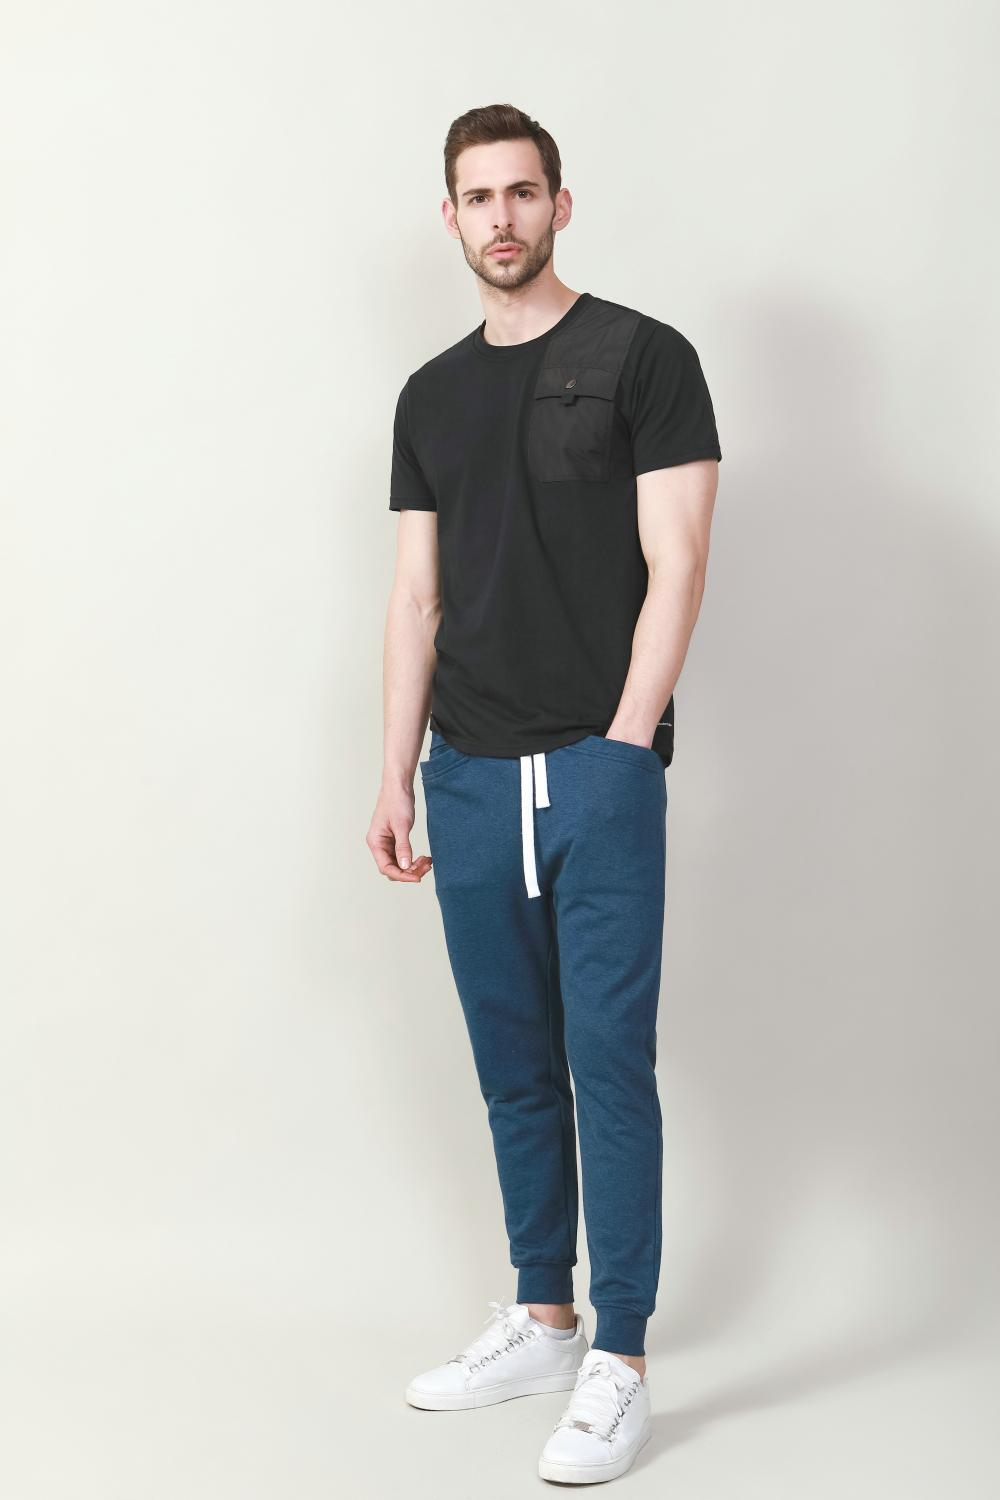 Men's cotton poly jersey with woven pocket details